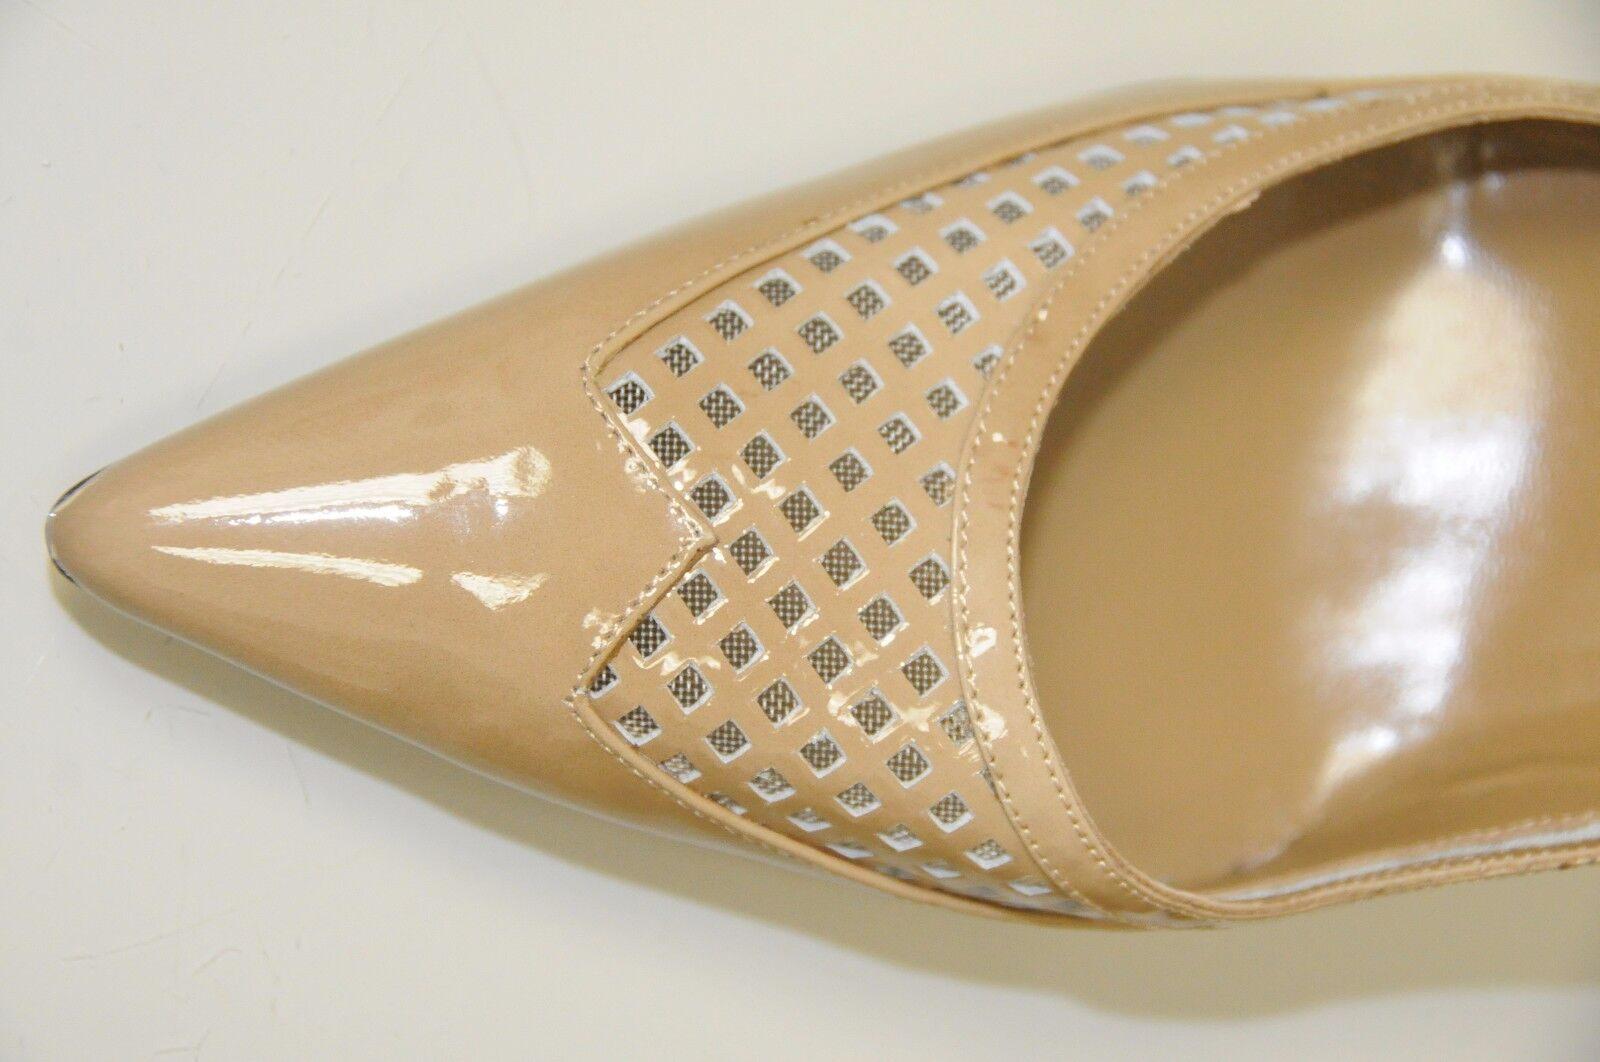 NEW MANOLO BLAHNIK Beige Patent Leather taupe taupe taupe Lt brown SHOES Pumps BB Heels 41.5 1710de